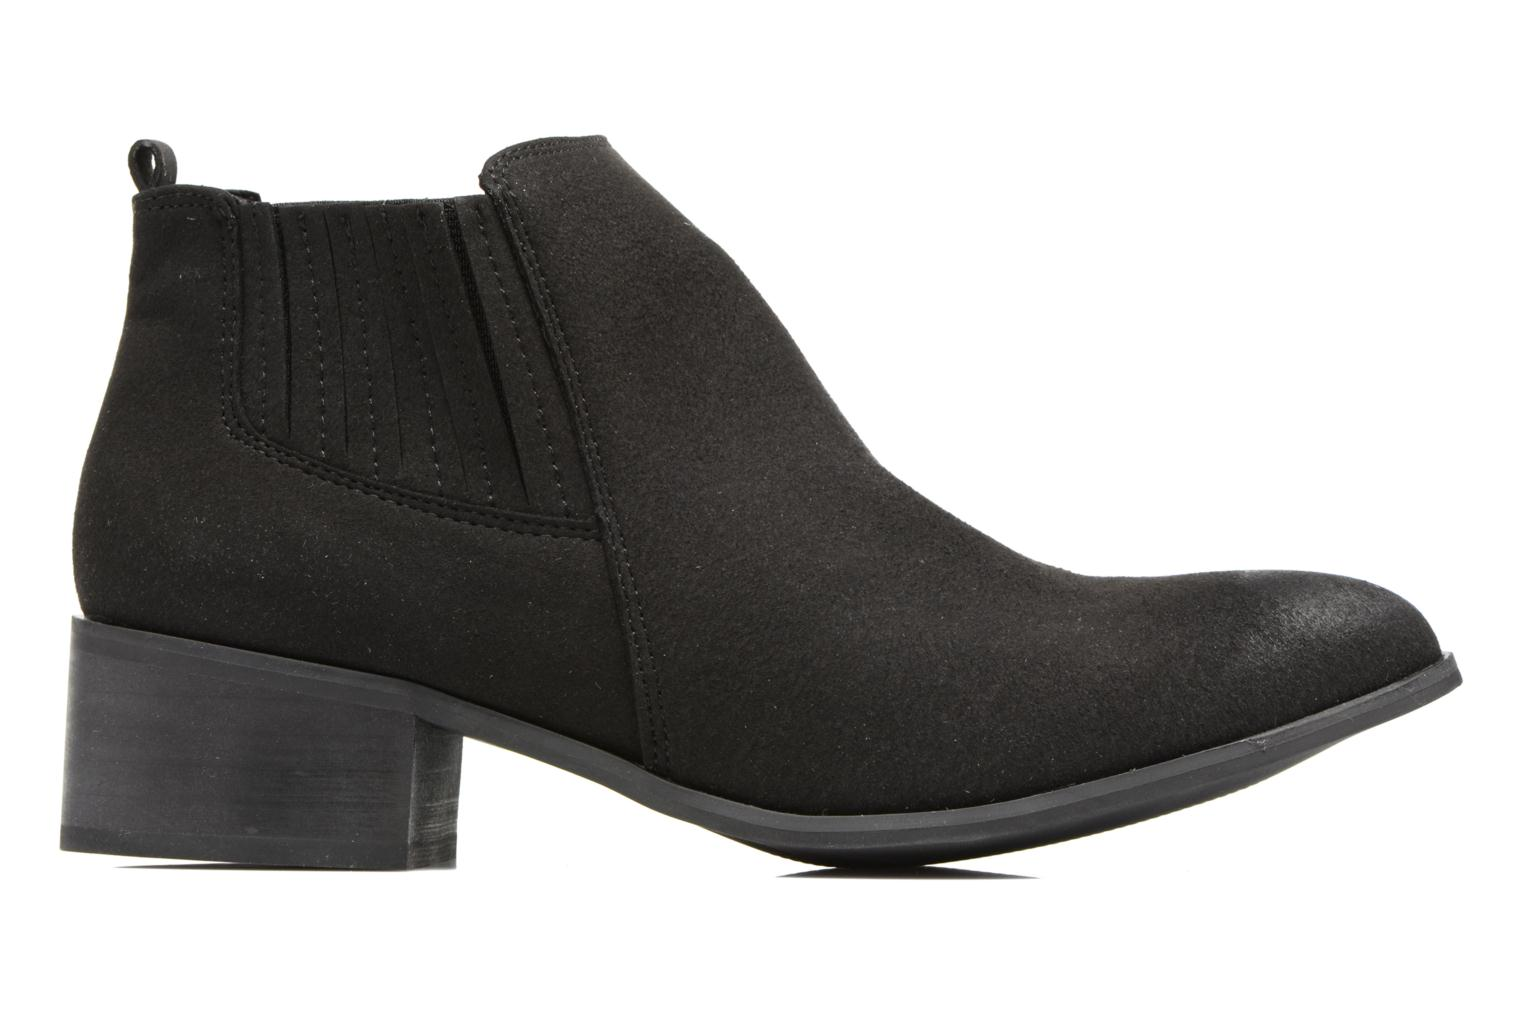 Sofie boot Black